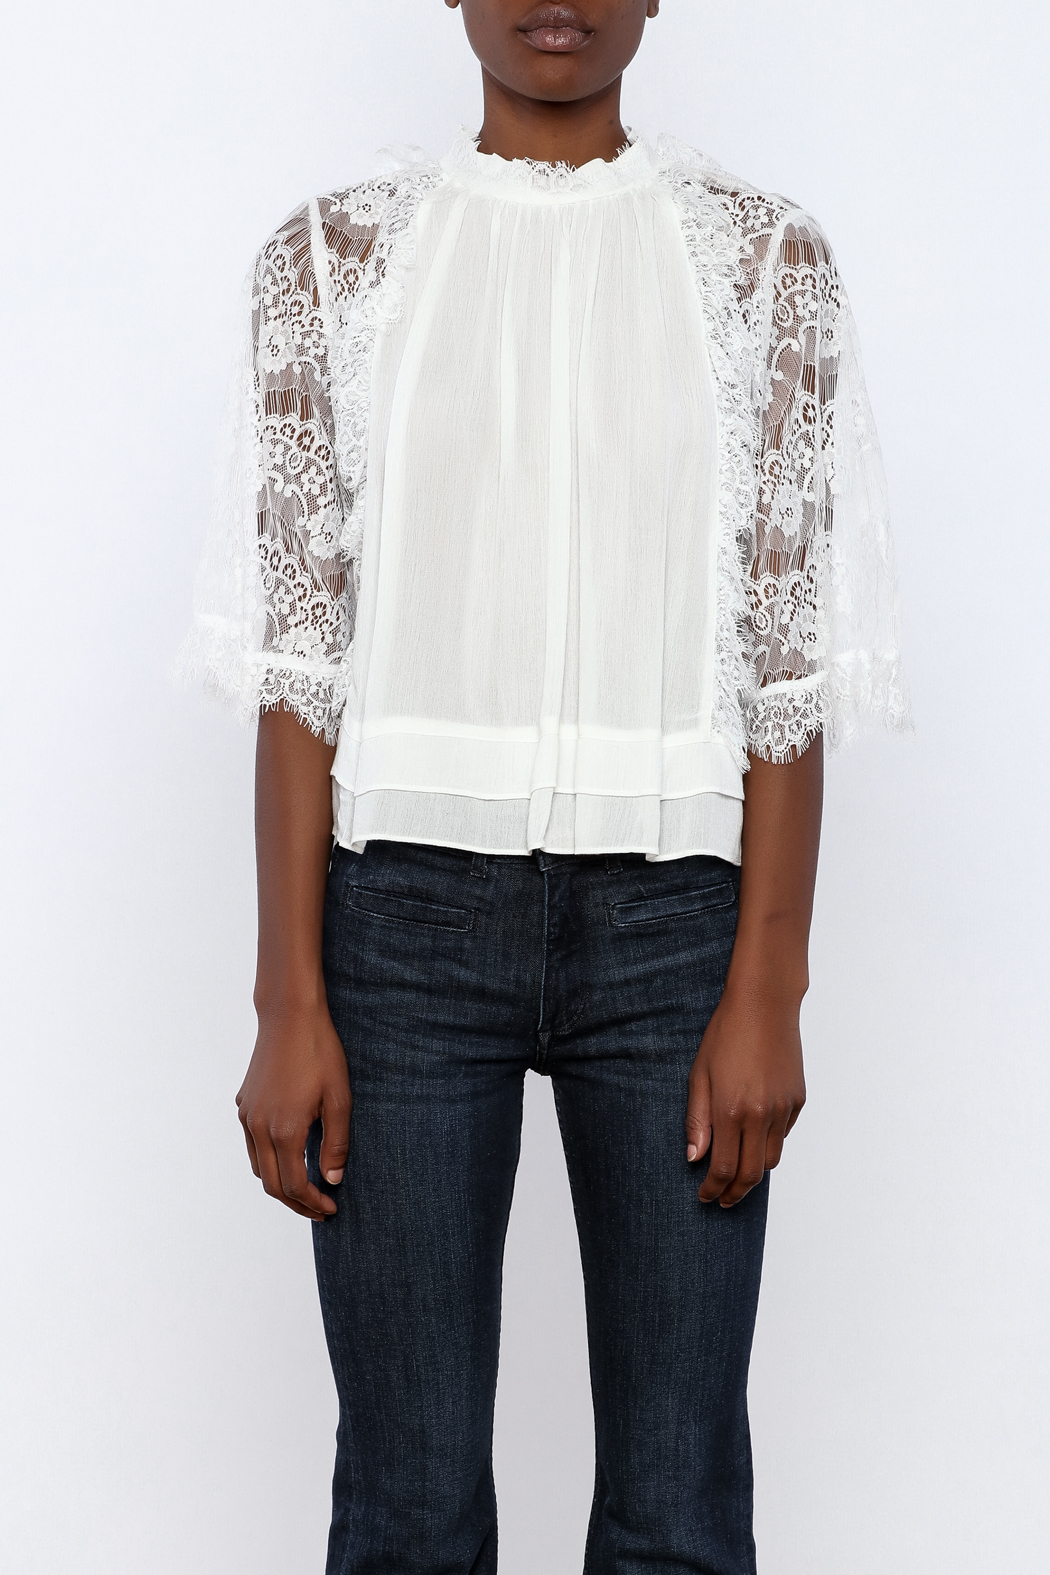 beulah Lace Sleeve Top - Side Cropped Image